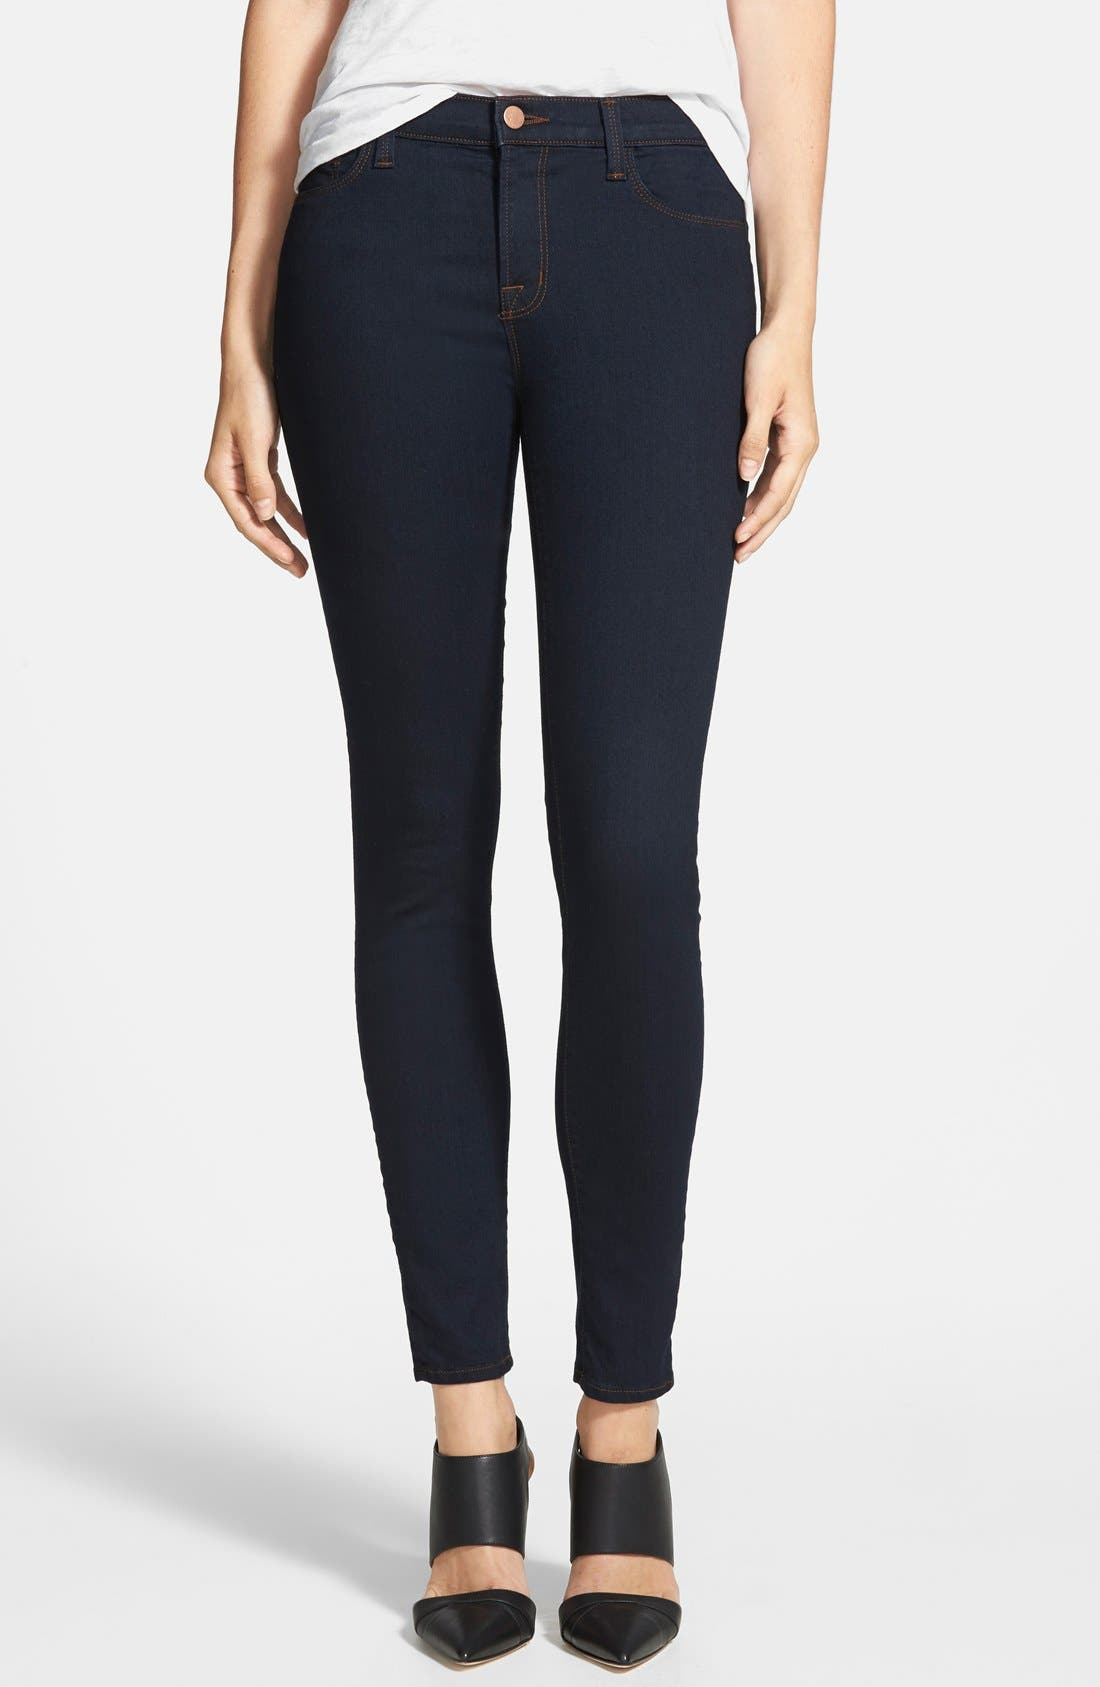 Alternate Image 1 Selected - J Brand '811' Ankle Skinny Jeans (Ink)